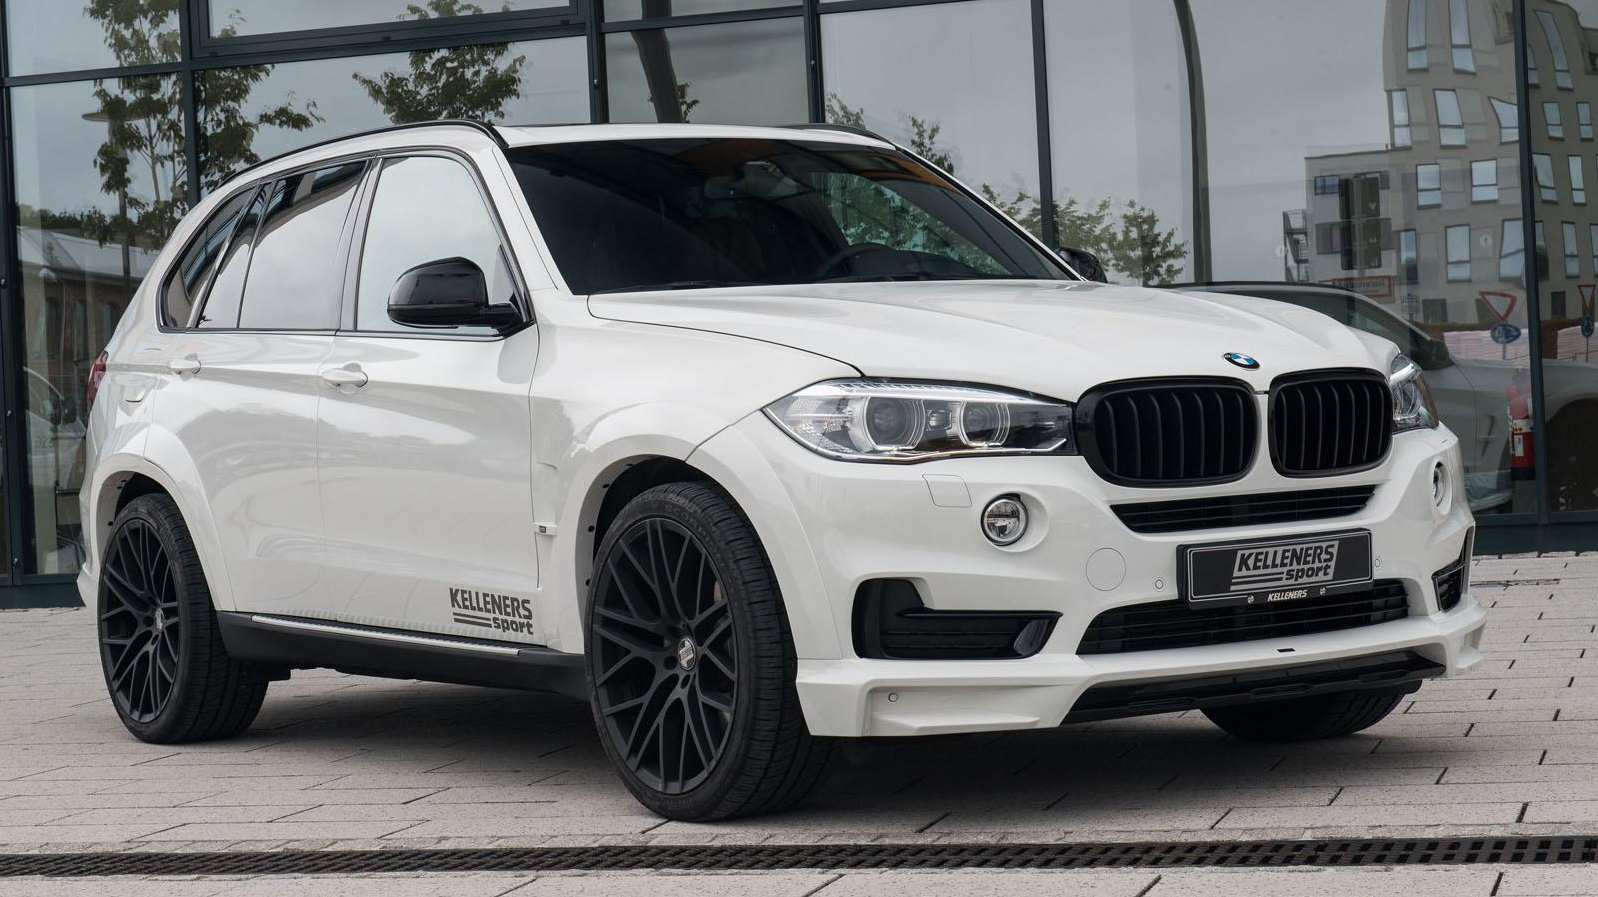 2014 Bmw X5 By Kelleners Sport Top Speed